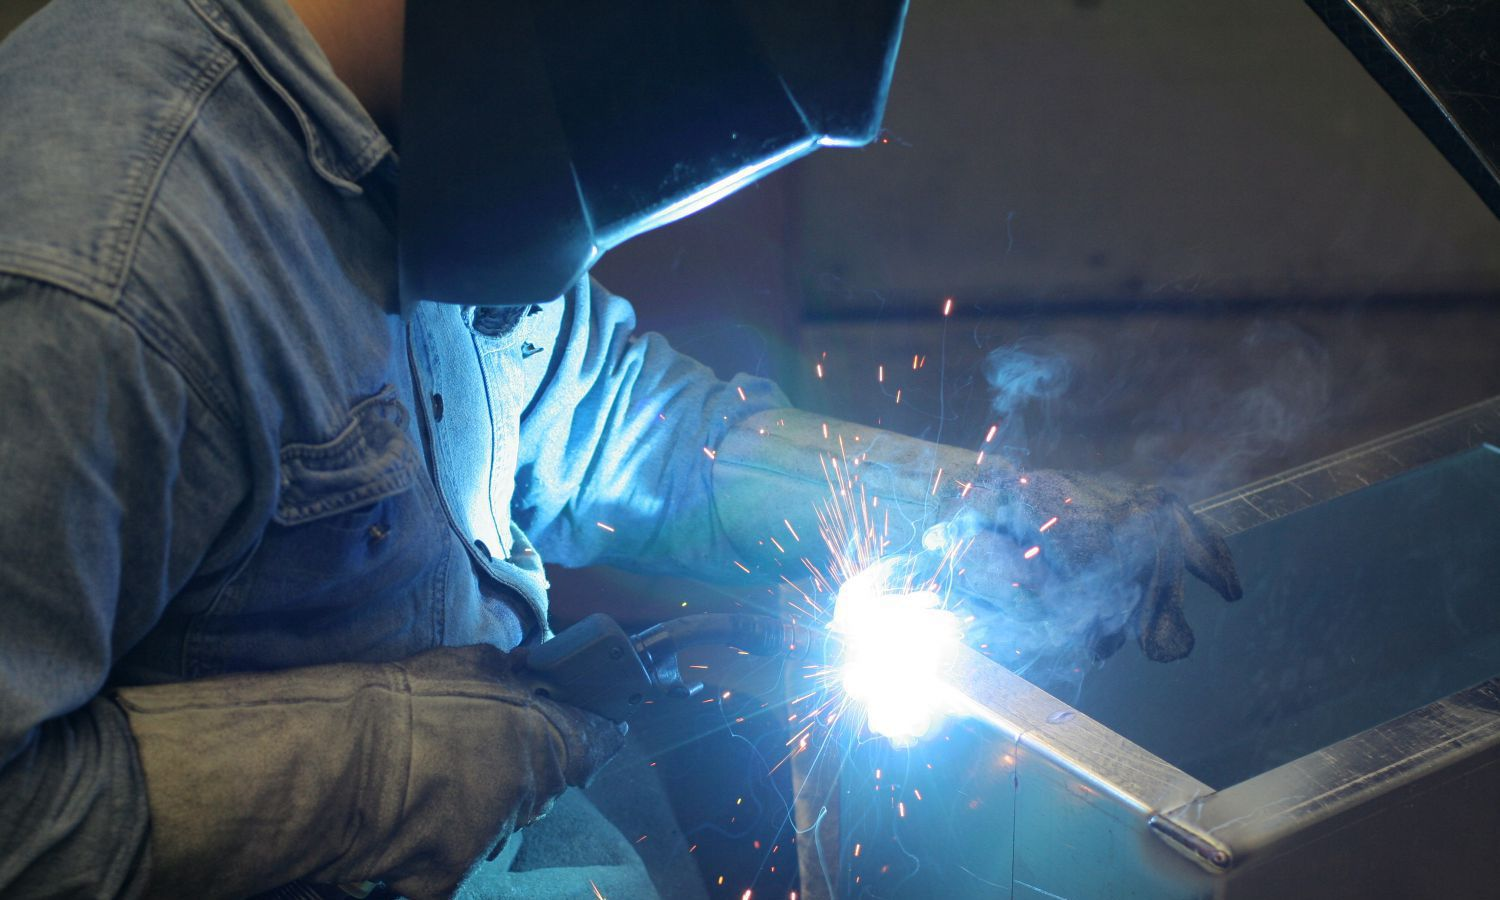 Industrial gas being used for welding in Chillicothe, OH